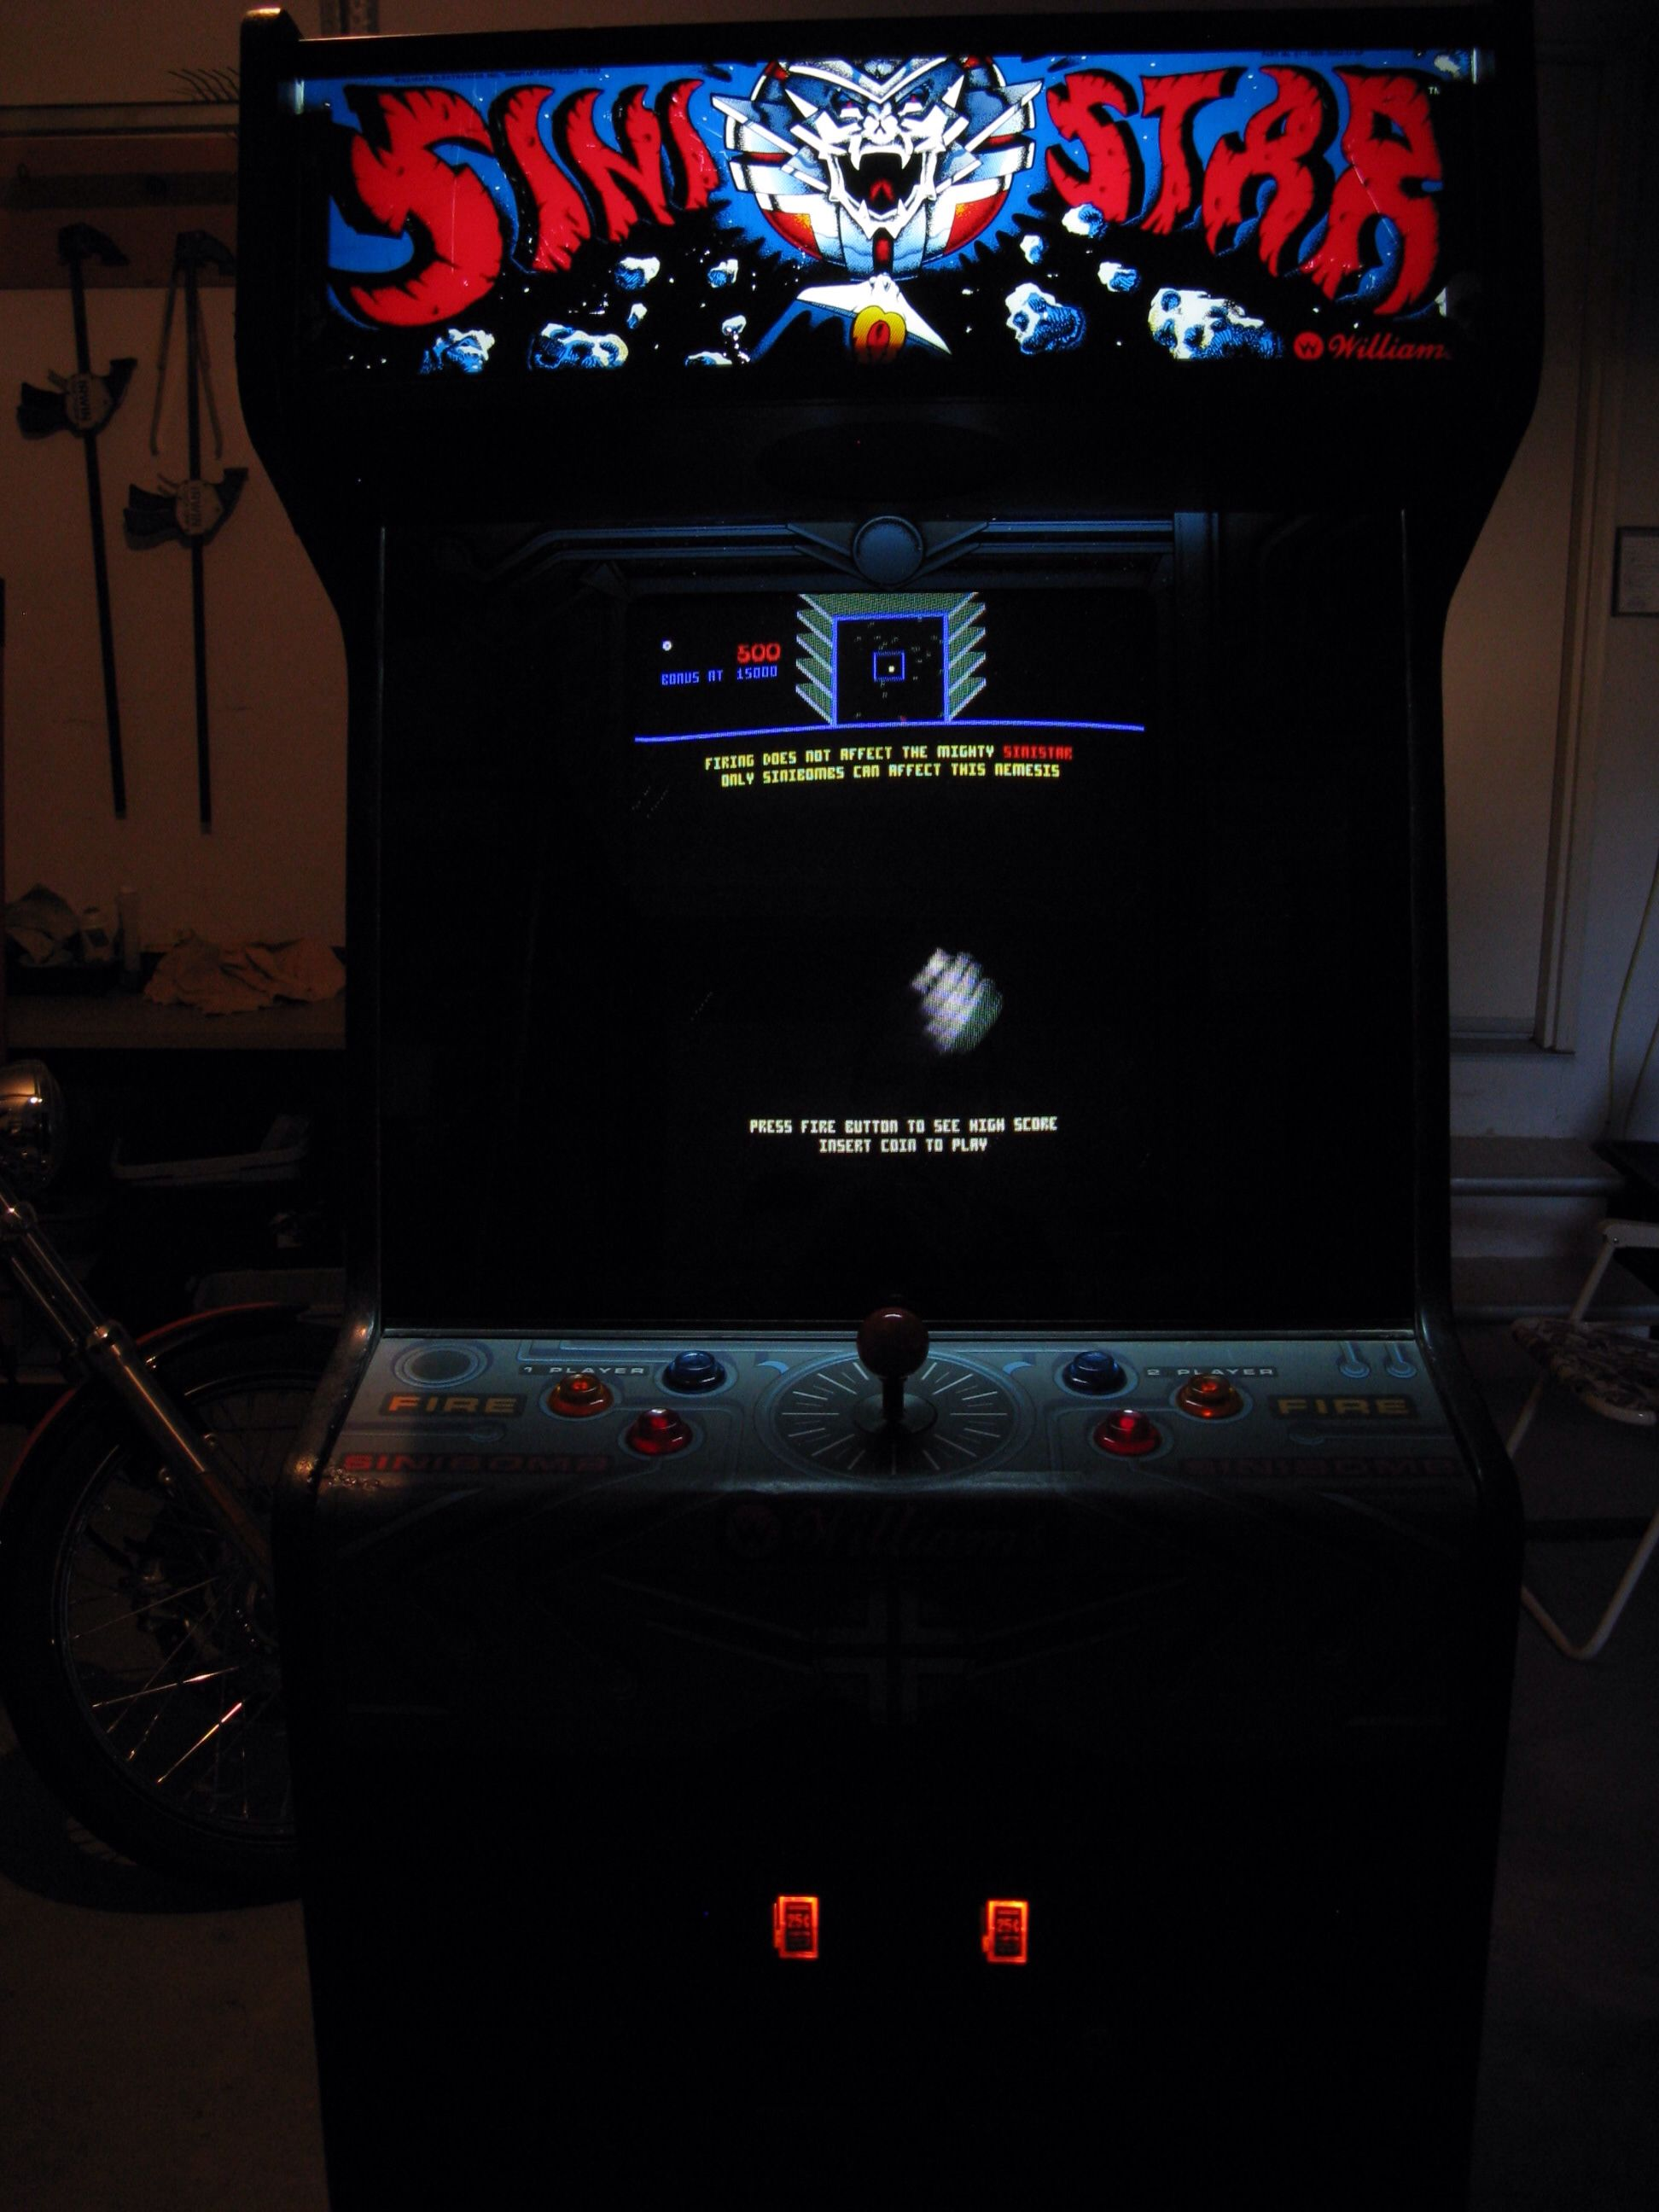 Another great arcade game: Sinistar... Run coward! | Vintage Toys ...